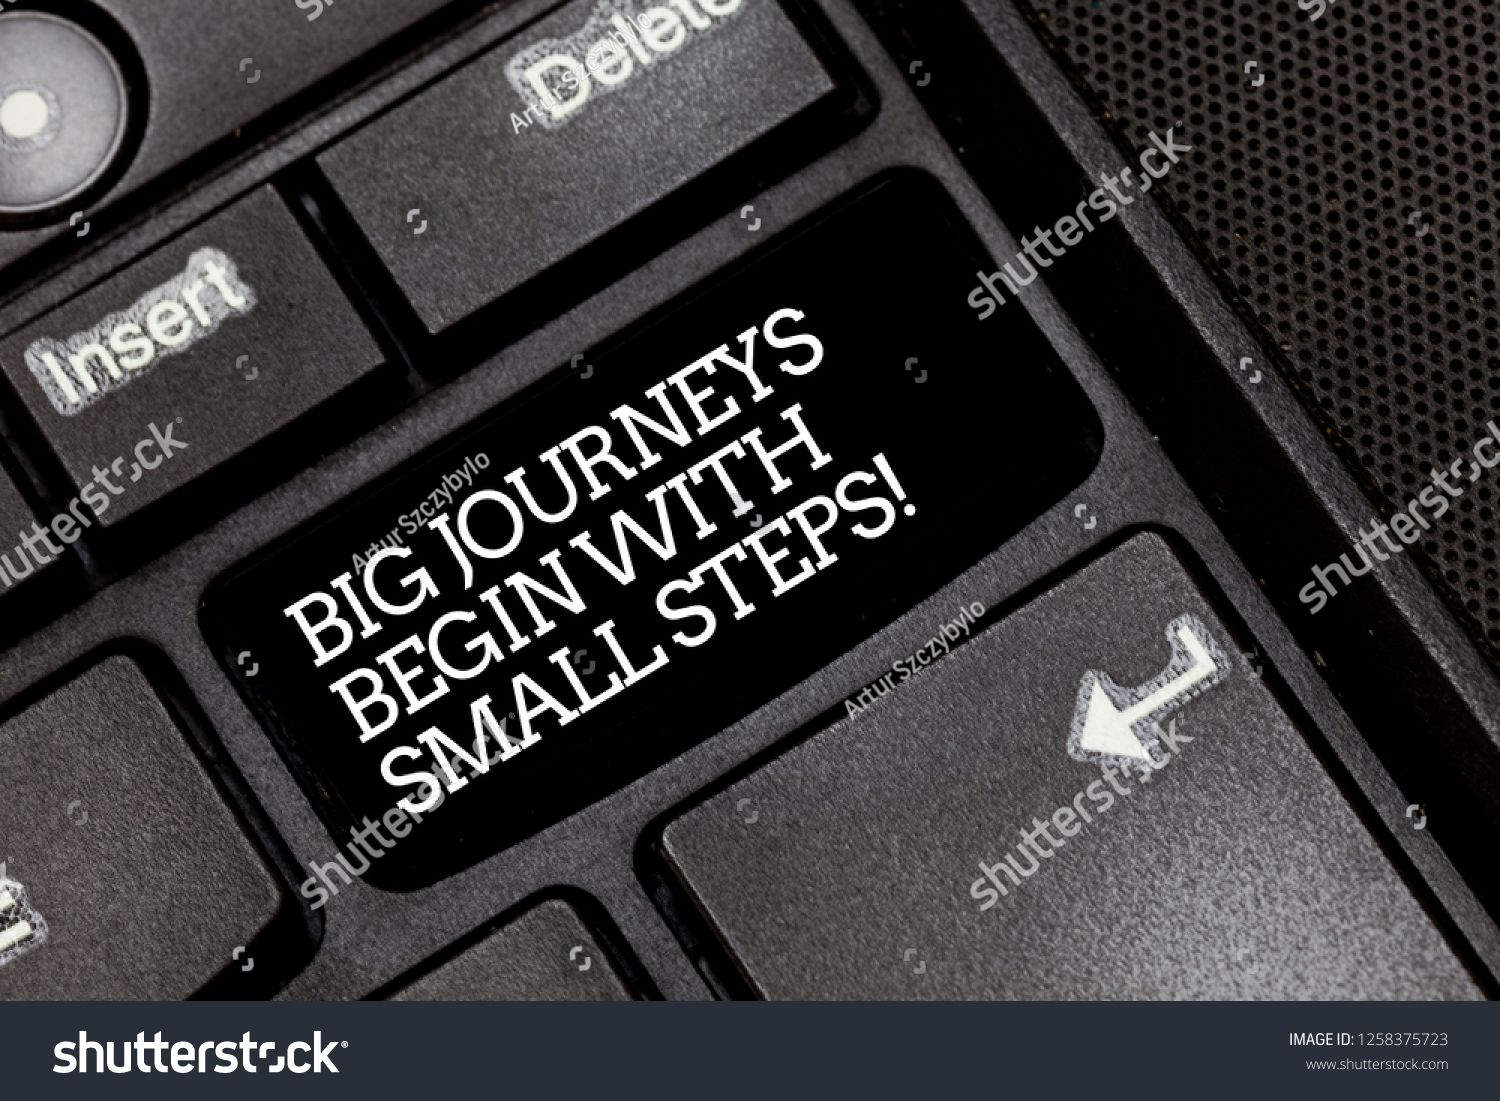 Handwriting Text Writing Big Journeys Begin With Small Steps Concept Meaning One Step At A Time To Reach Your Goals Keybo Concept Meaning Meant To Be Computer